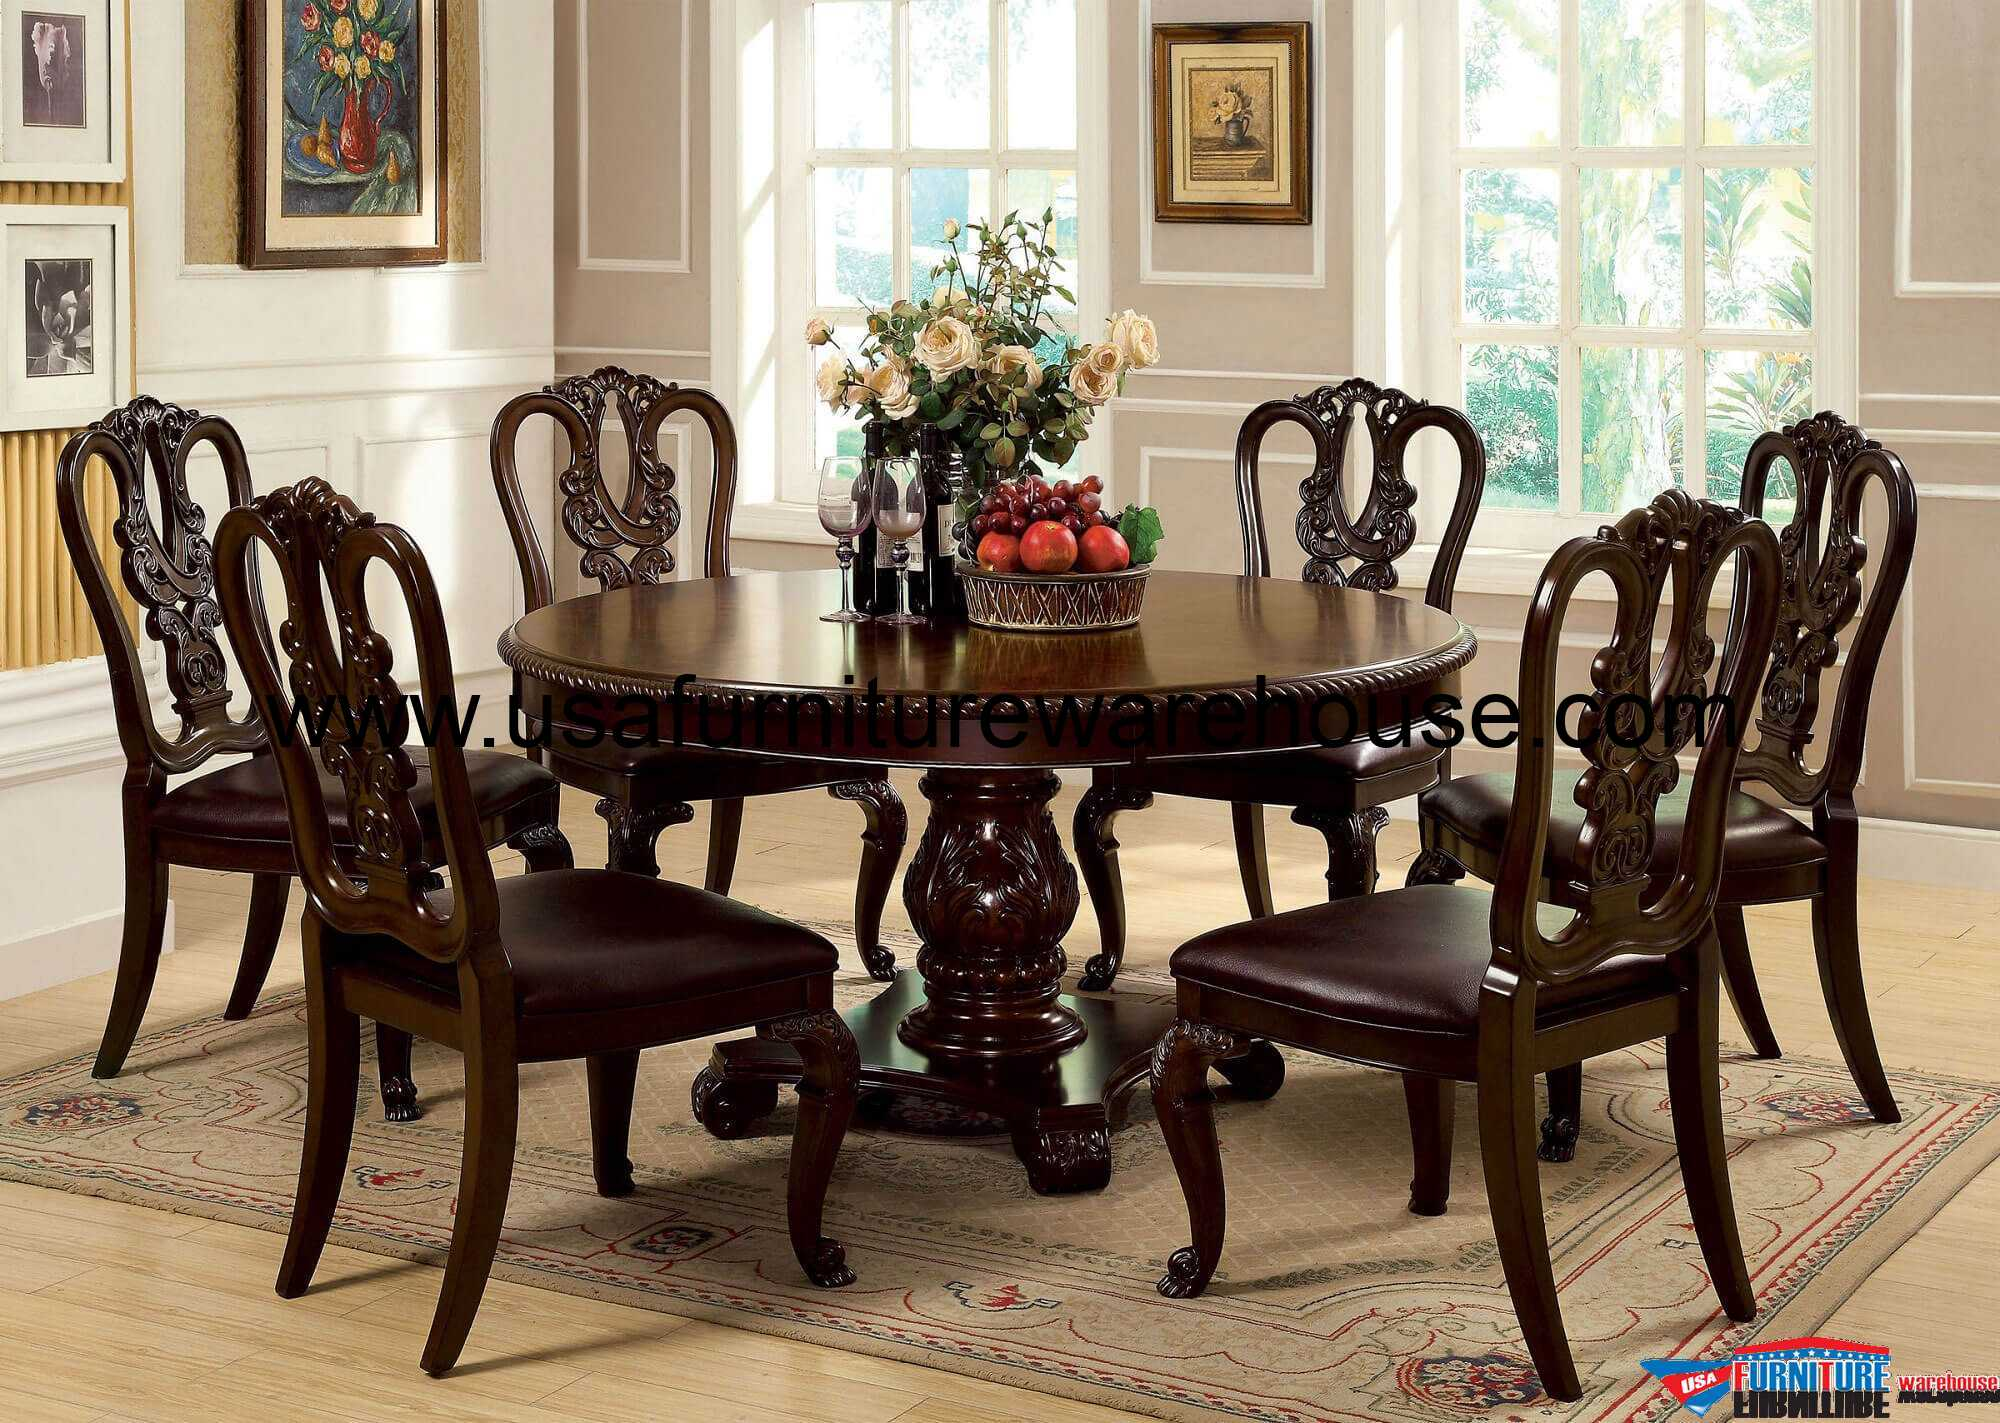 Dining Chairs Set 7 Piece Bellagio Round Dining Set With Wooden Side Chair